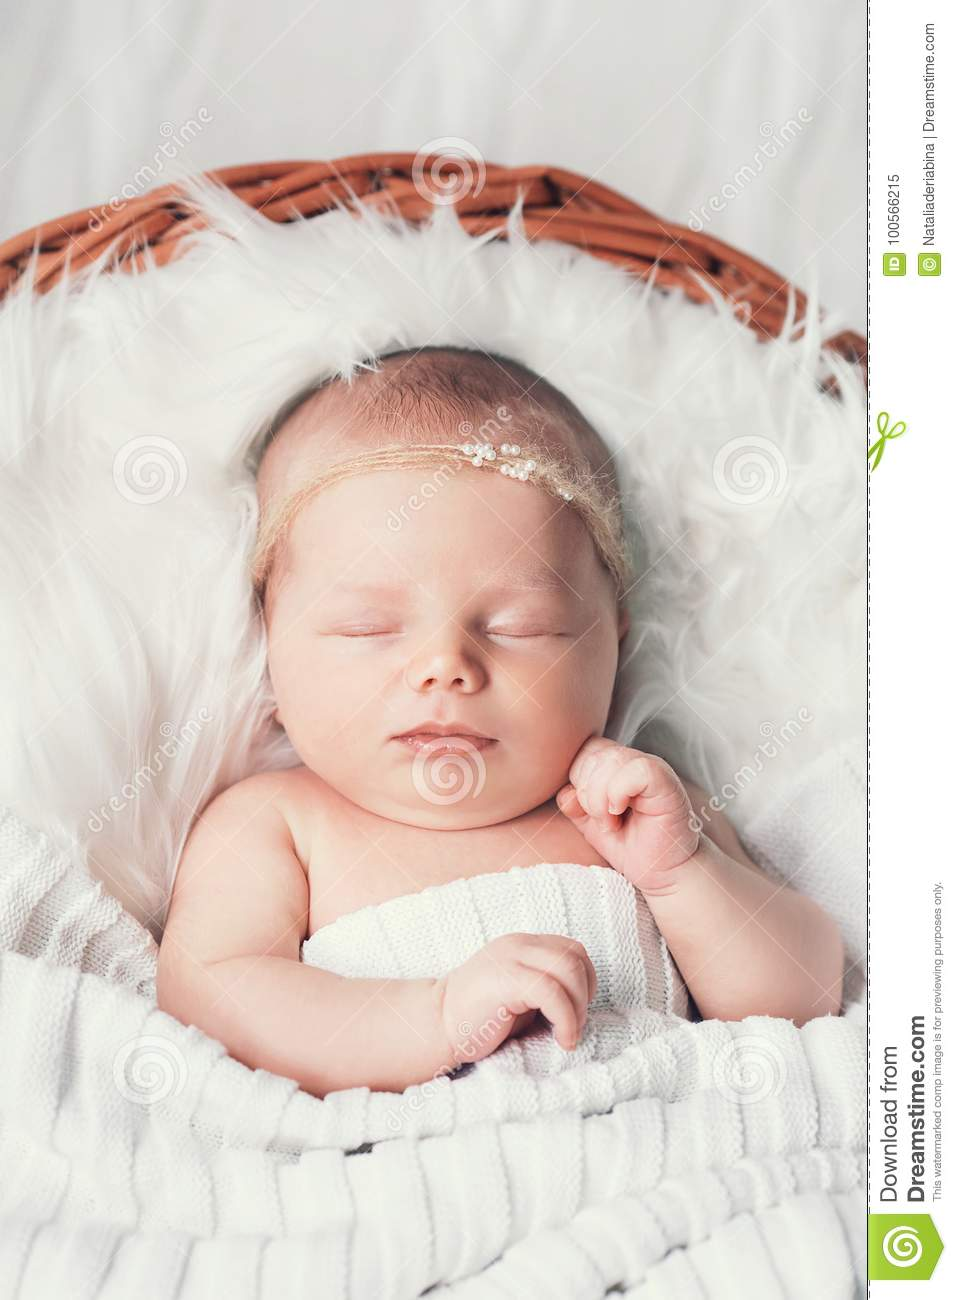 Sleeping Newborn Baby In A Wrap On White Blanket Stock Image